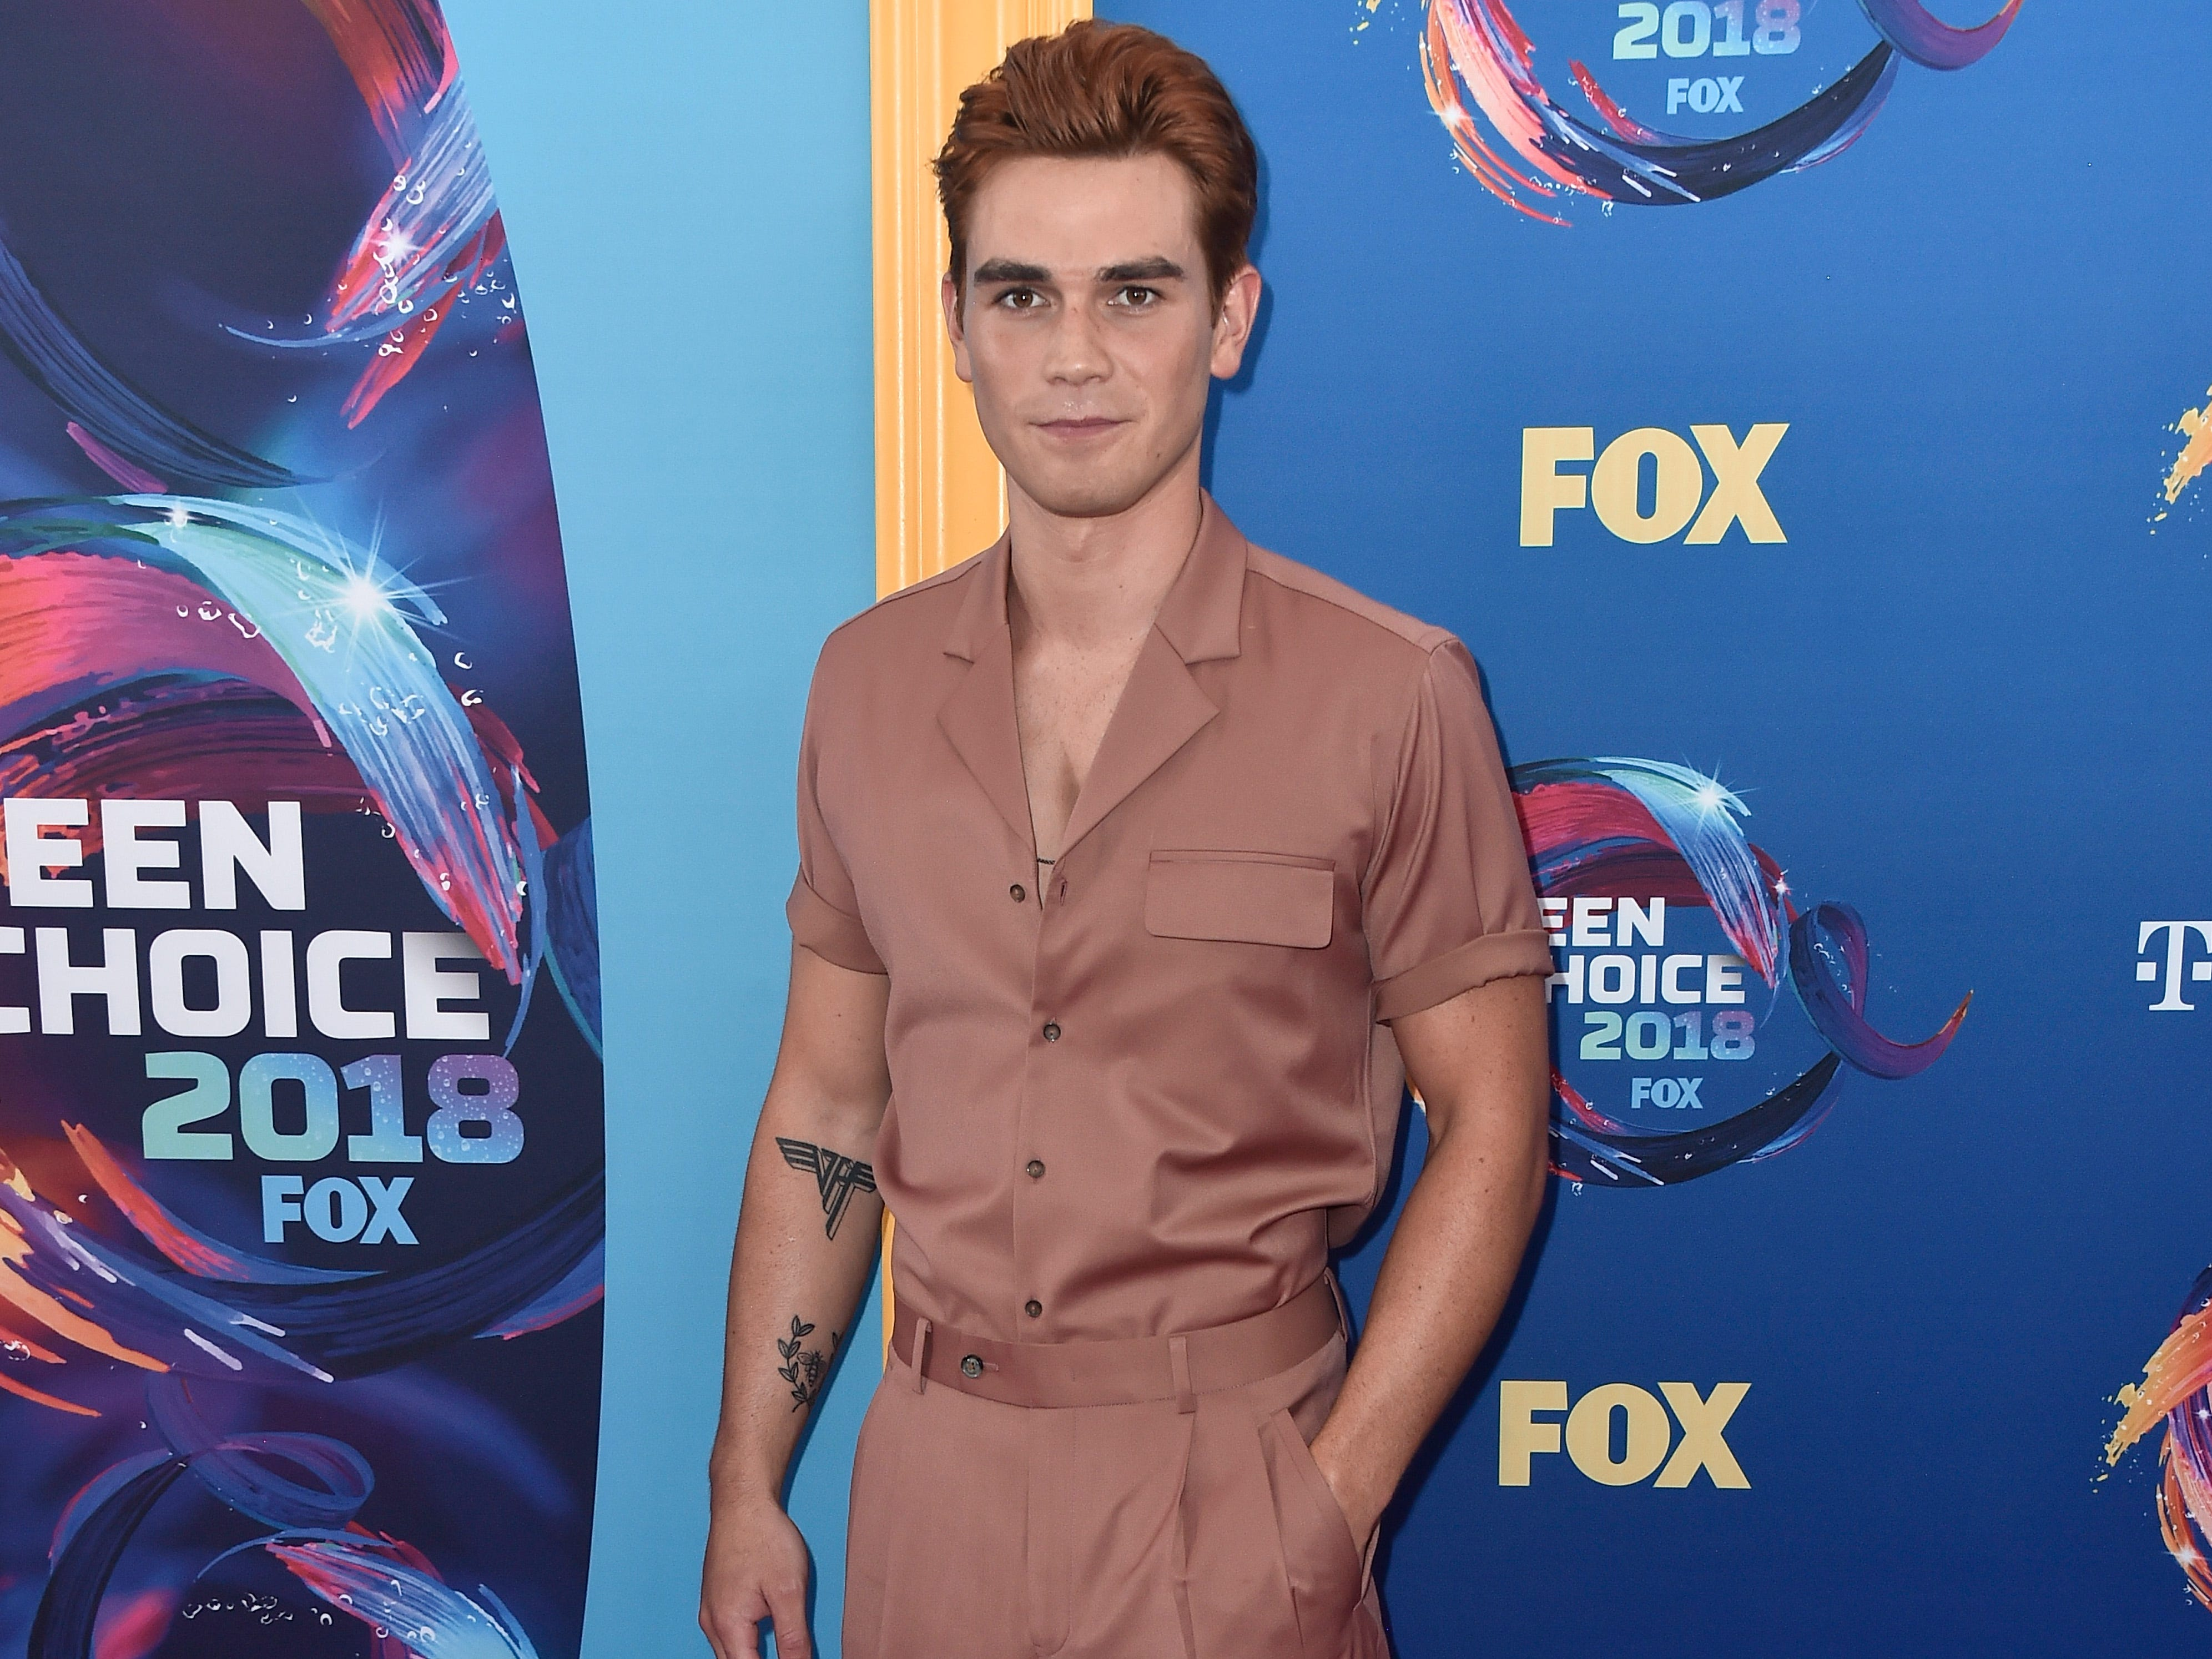 INGLEWOOD, CA - AUGUST 12:  KJ Apa attends FOX's Teen Choice Awards at The Forum on August 12, 2018 in Inglewood, California.  (Photo by Frazer Harrison/Getty Images) ORG XMIT: 775199256 ORIG FILE ID: 1015797828